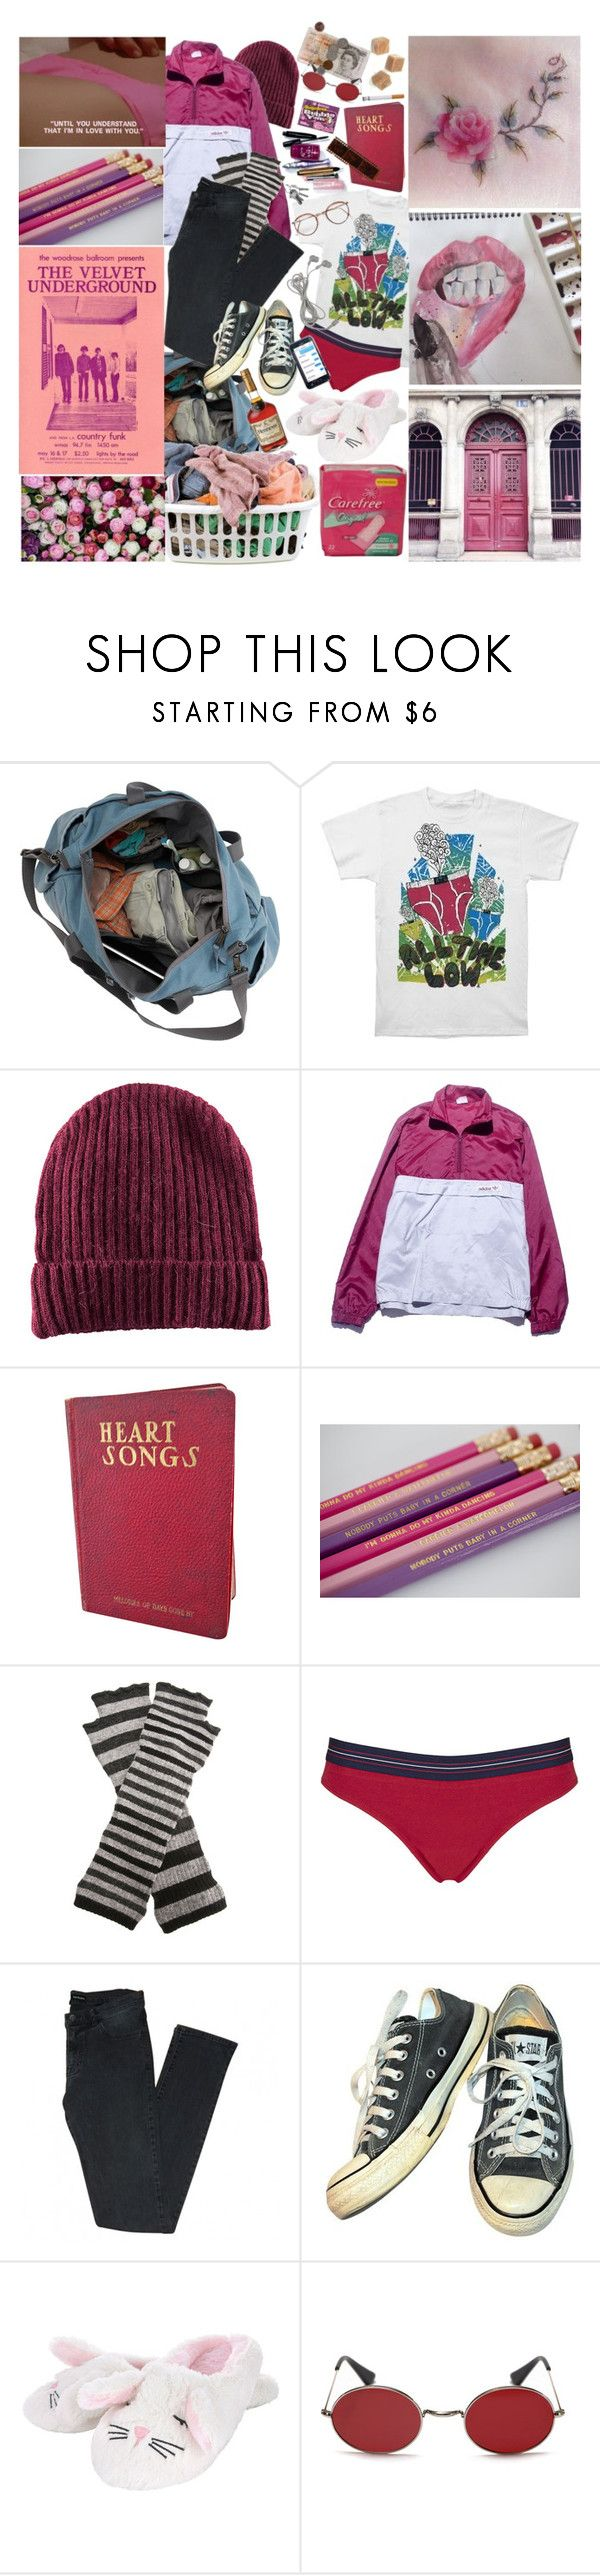 """""""Freezing Rain & Emotional Pain"""" by ilovewangs911 ❤ liked on Polyvore featuring Laundry, H&M, adidas, Cooperative Designs, Topshop, The Kooples, Converse and Murdock London"""